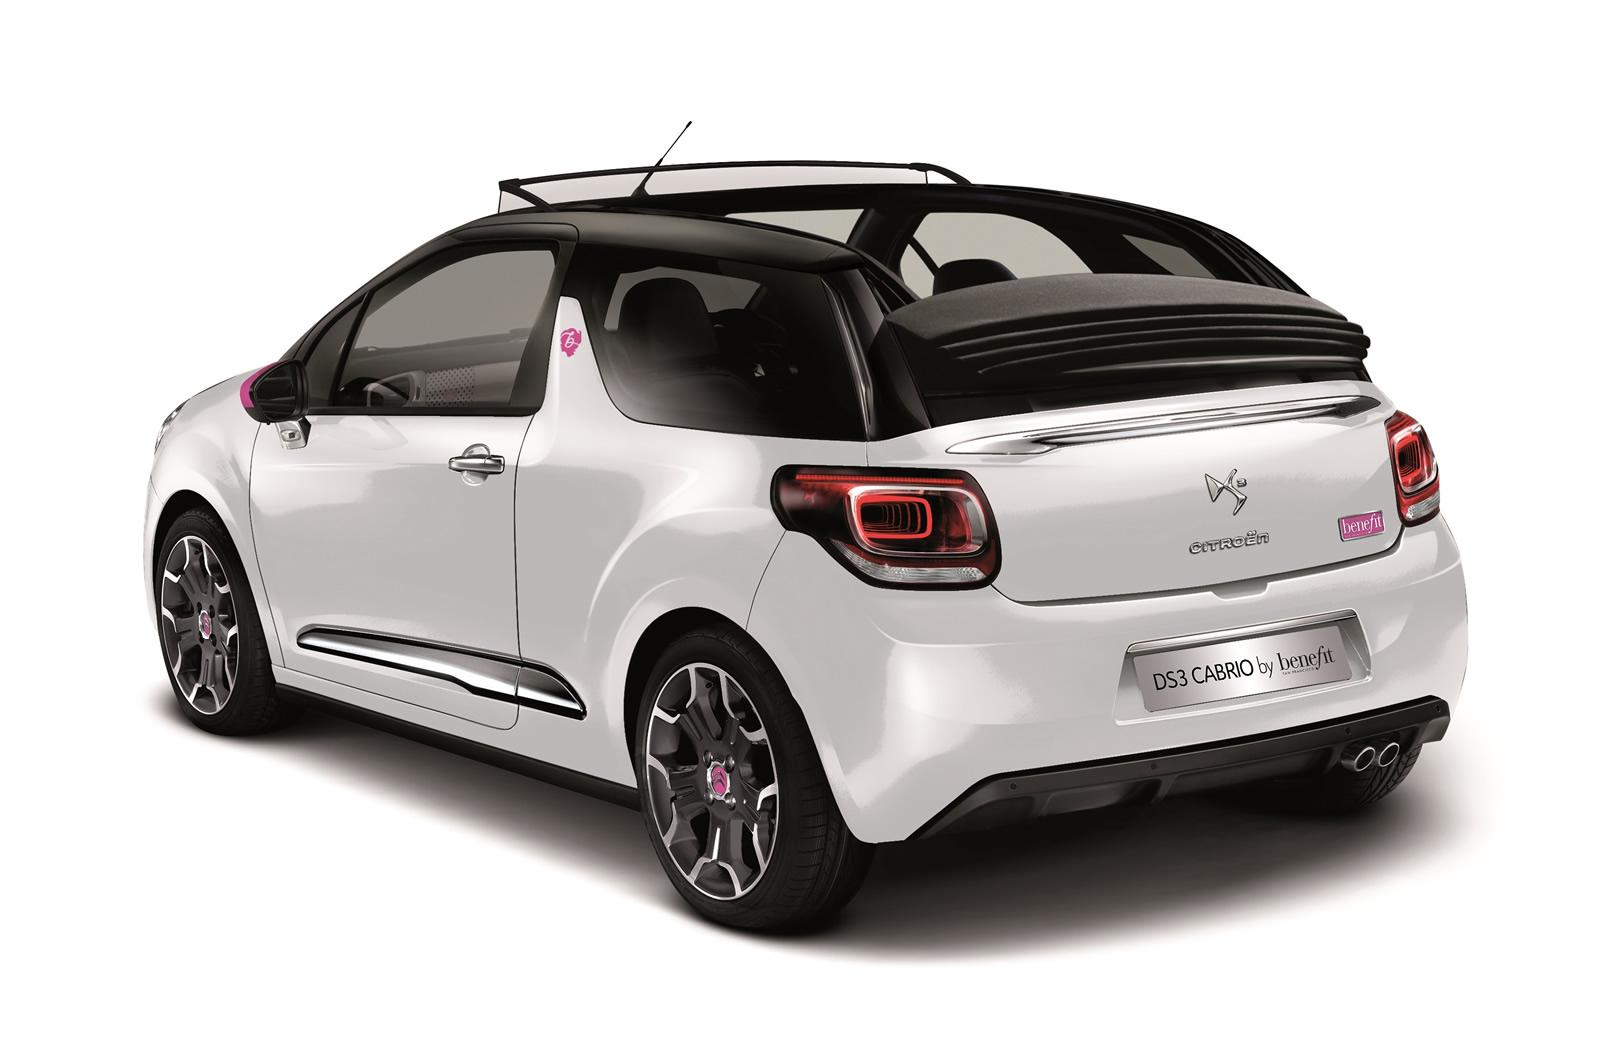 citroen ds3 cabrio gets the dstyle by benefit treatment. Black Bedroom Furniture Sets. Home Design Ideas